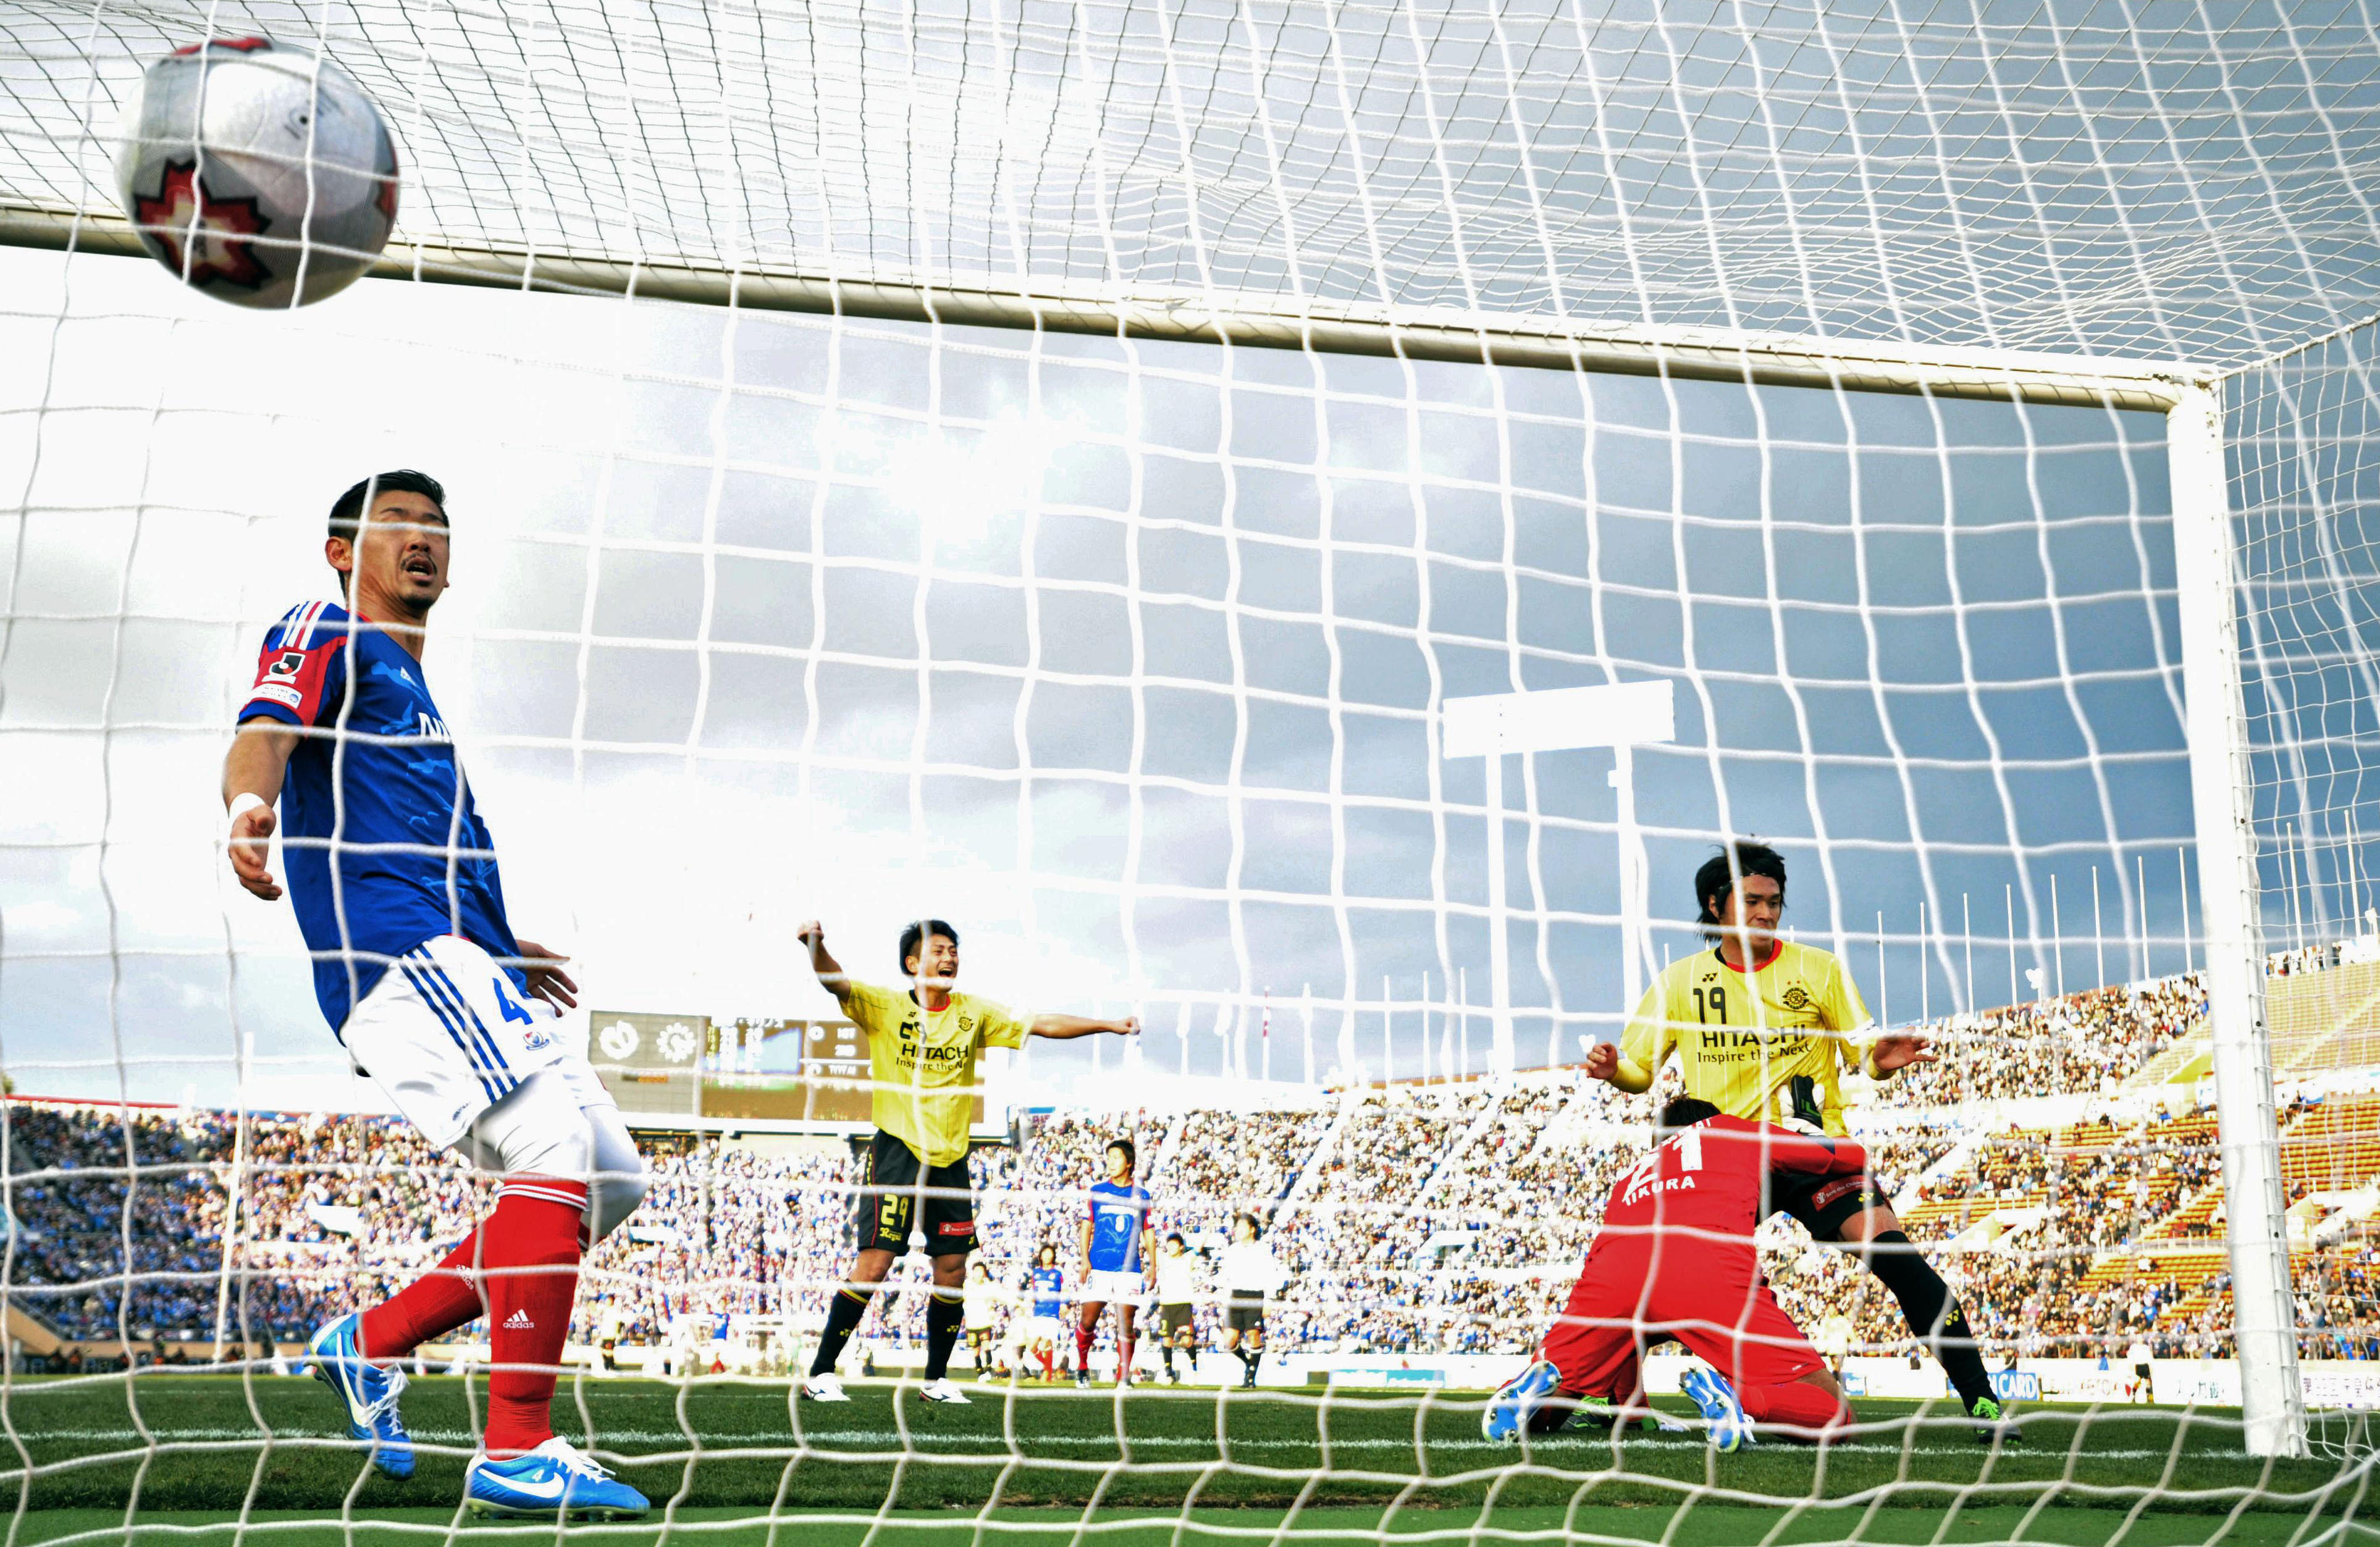 Mission accomplished: Masato Kudo of Kashiwa Reysol (19) scores the match's lone goal in the Emperor's Cup semifinals on Saturday at National Stadium. Reysol defeated Yokohama F. Marinos 1-0. | KYODO